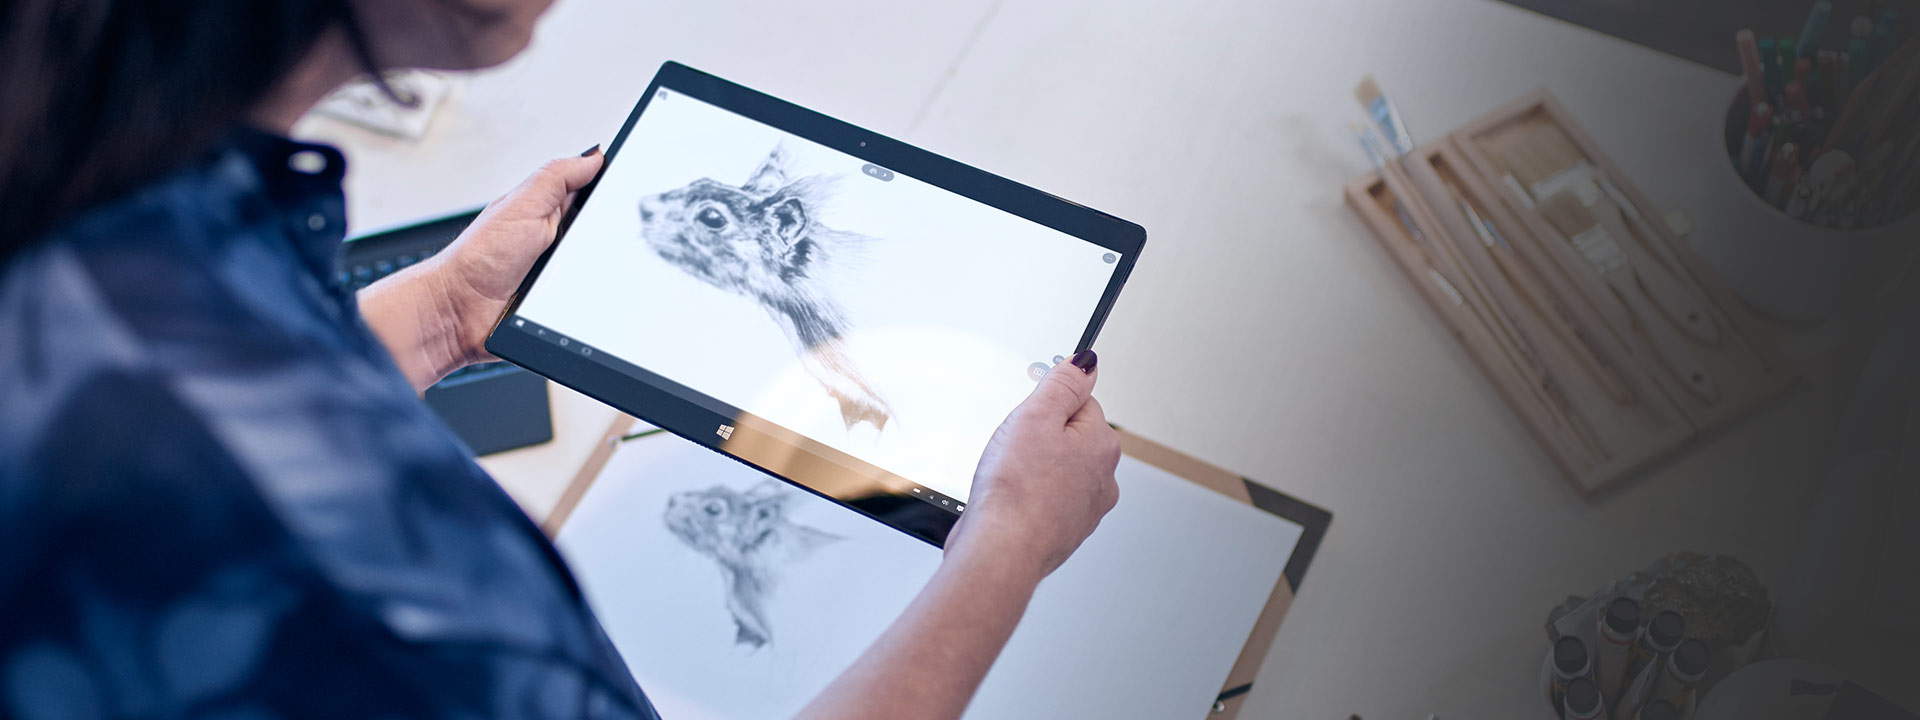 Windows Ink on Lenovo Yoga 900 tablet